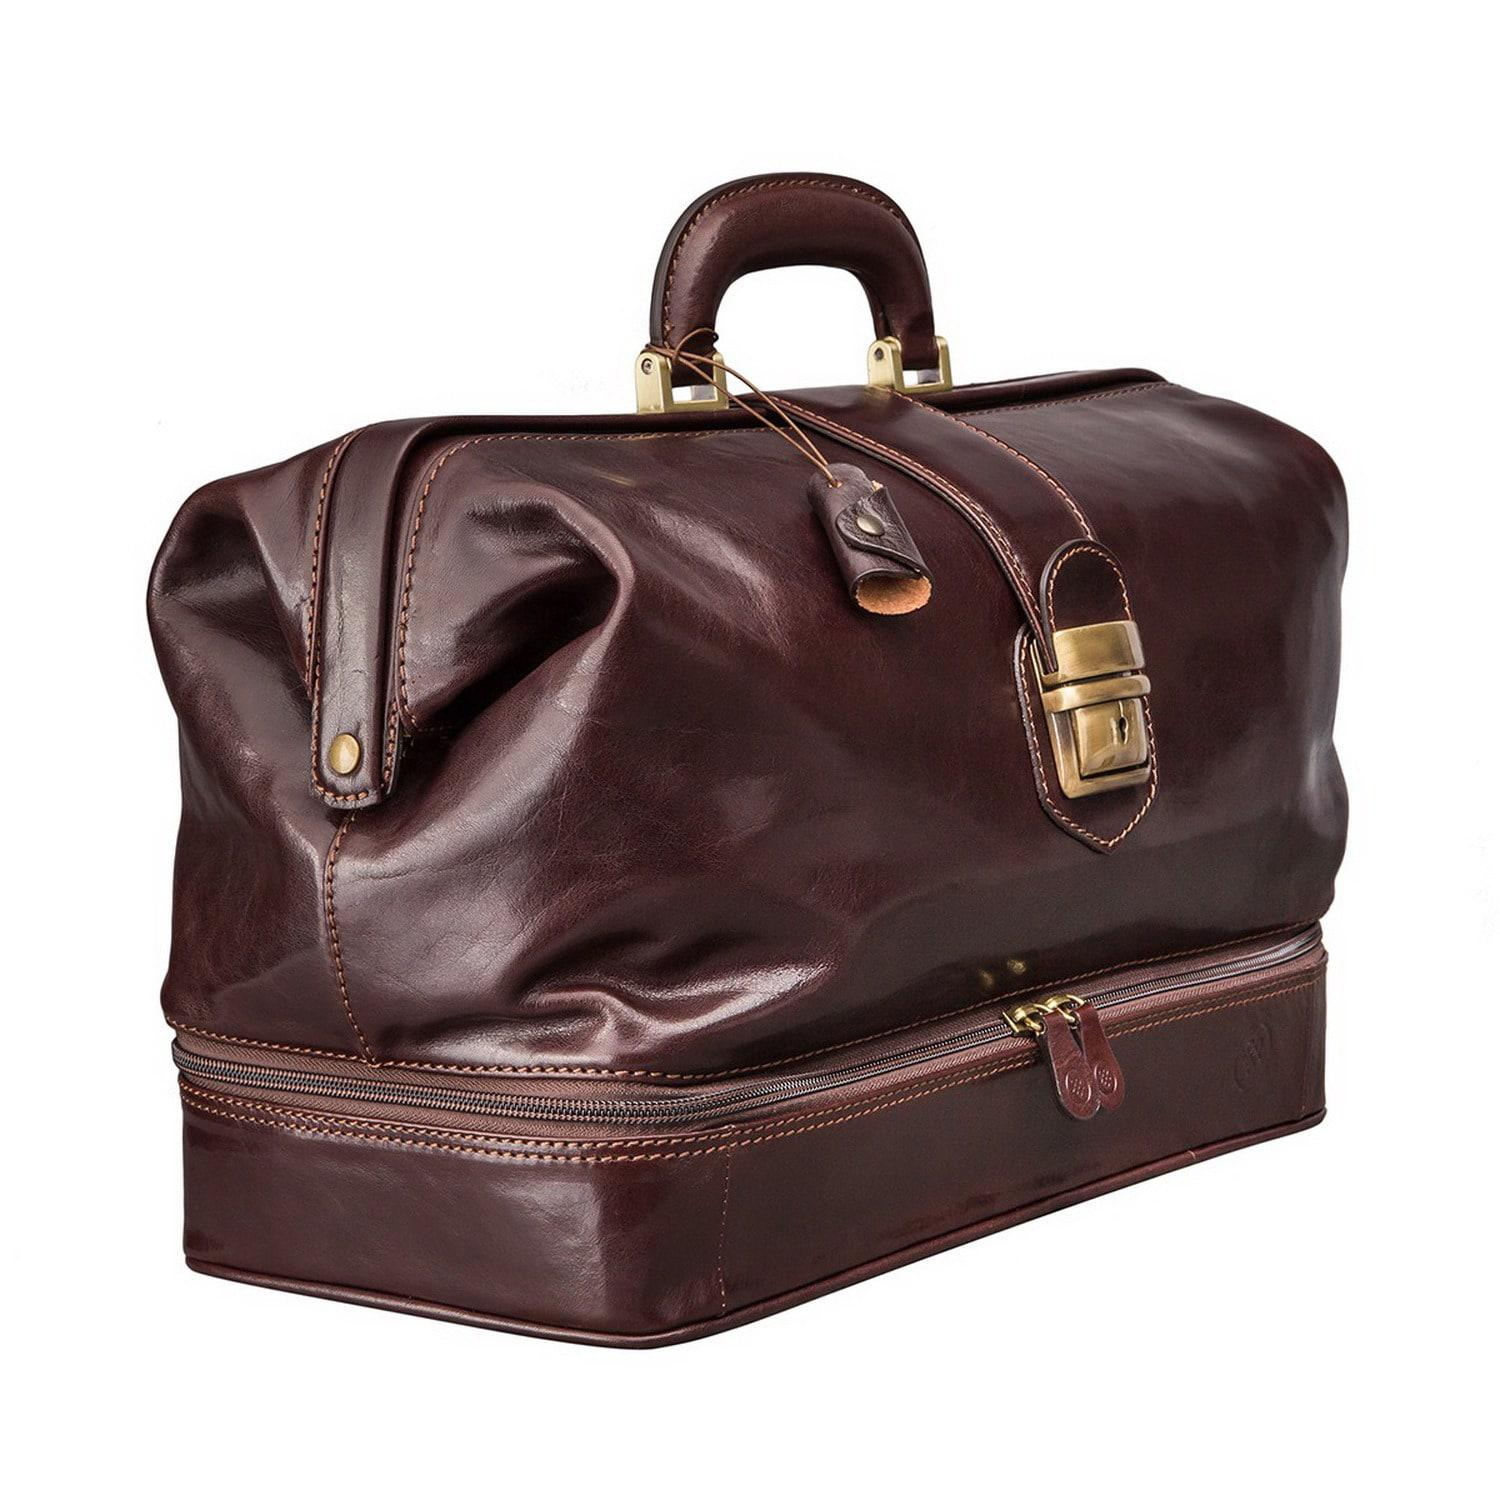 lyst maxwell scott bags luxury italian leather doctor bag large donnini dark chocolate brown. Black Bedroom Furniture Sets. Home Design Ideas